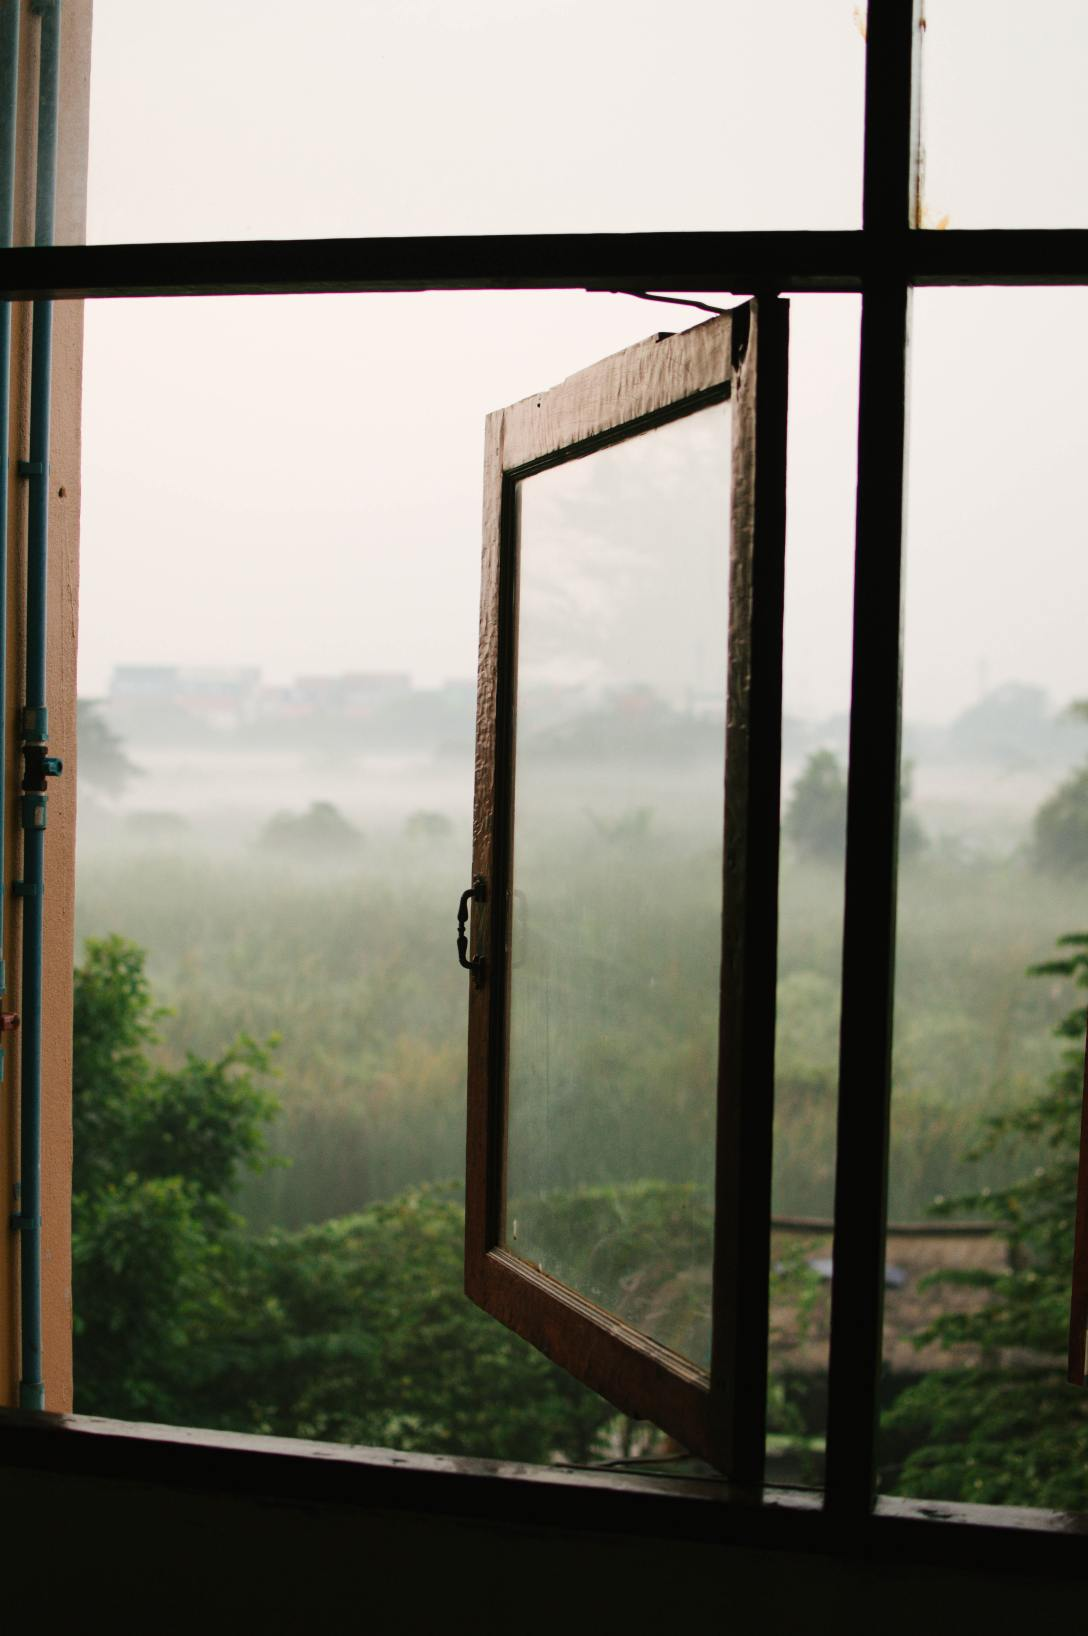 open window with trees and fog outside